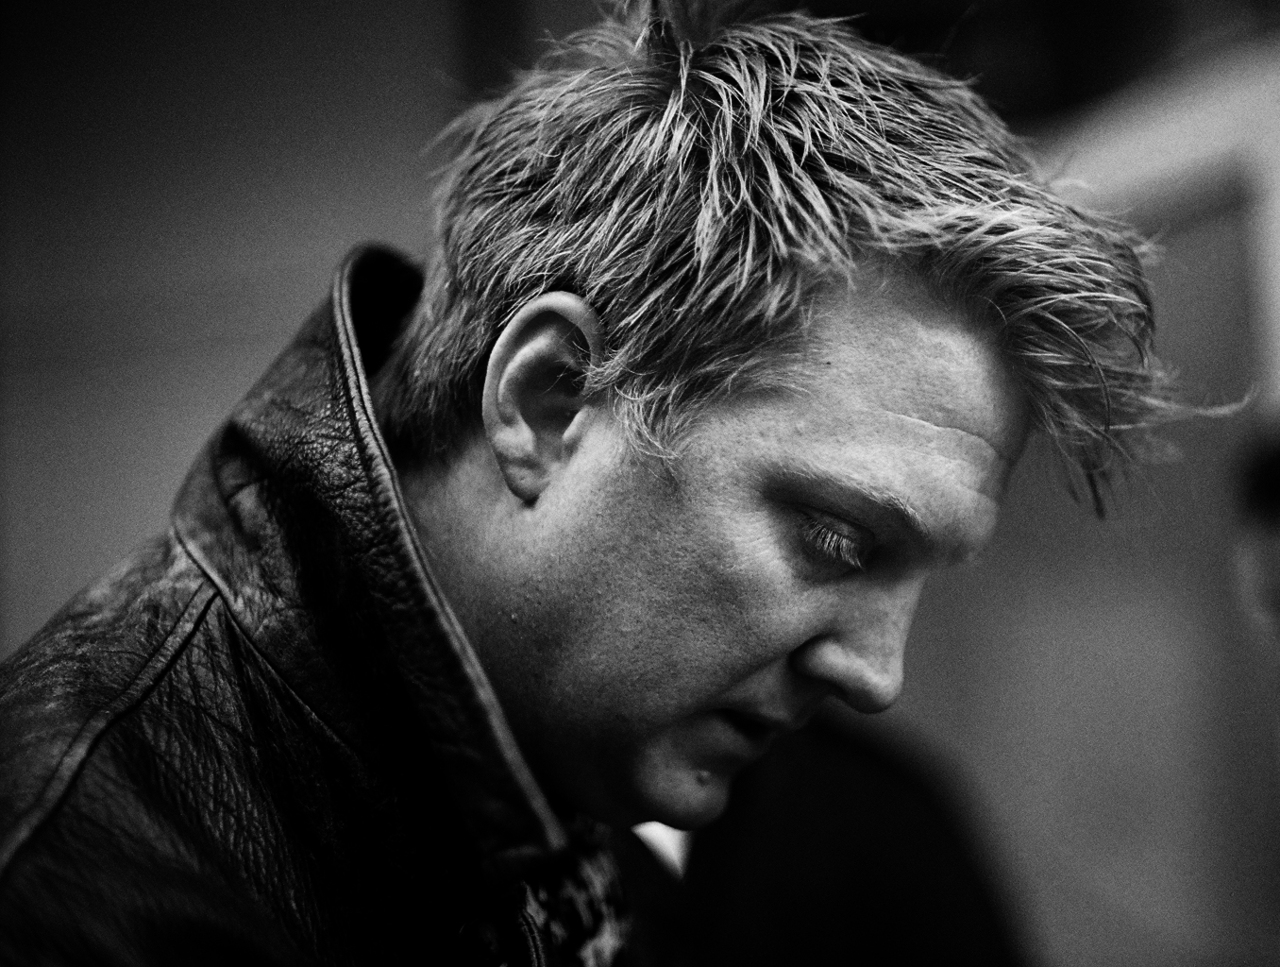 A collection of photos of Josh Homme: